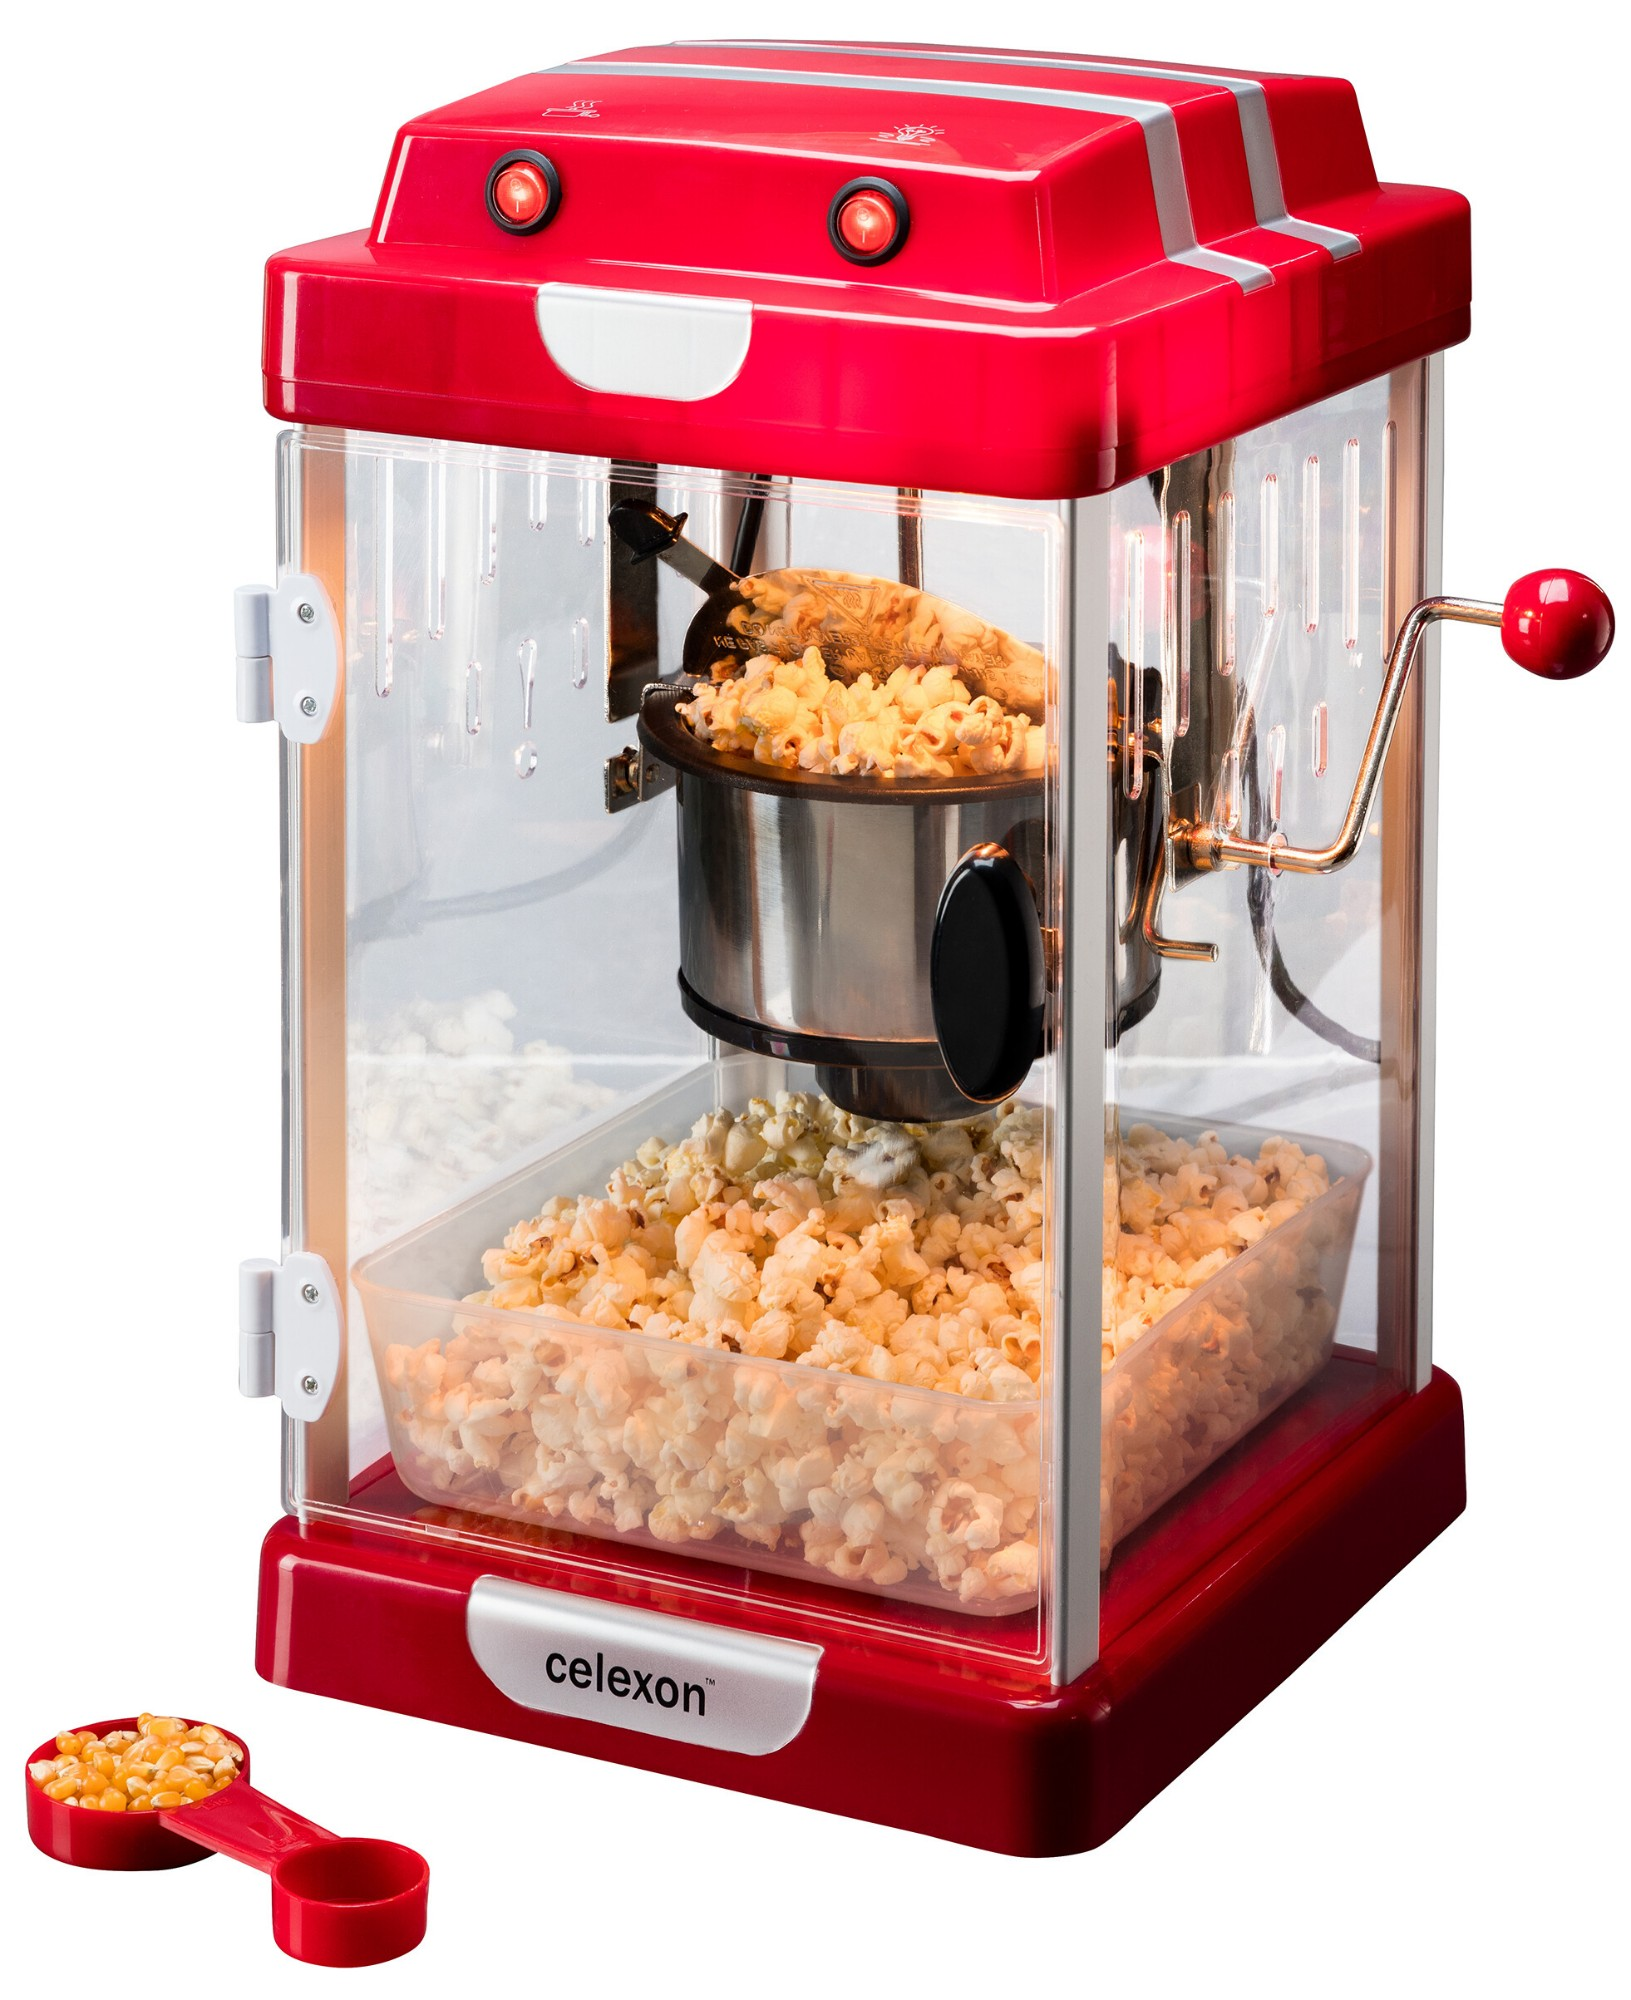 Celexon CinePop CP1000 popcorn machine